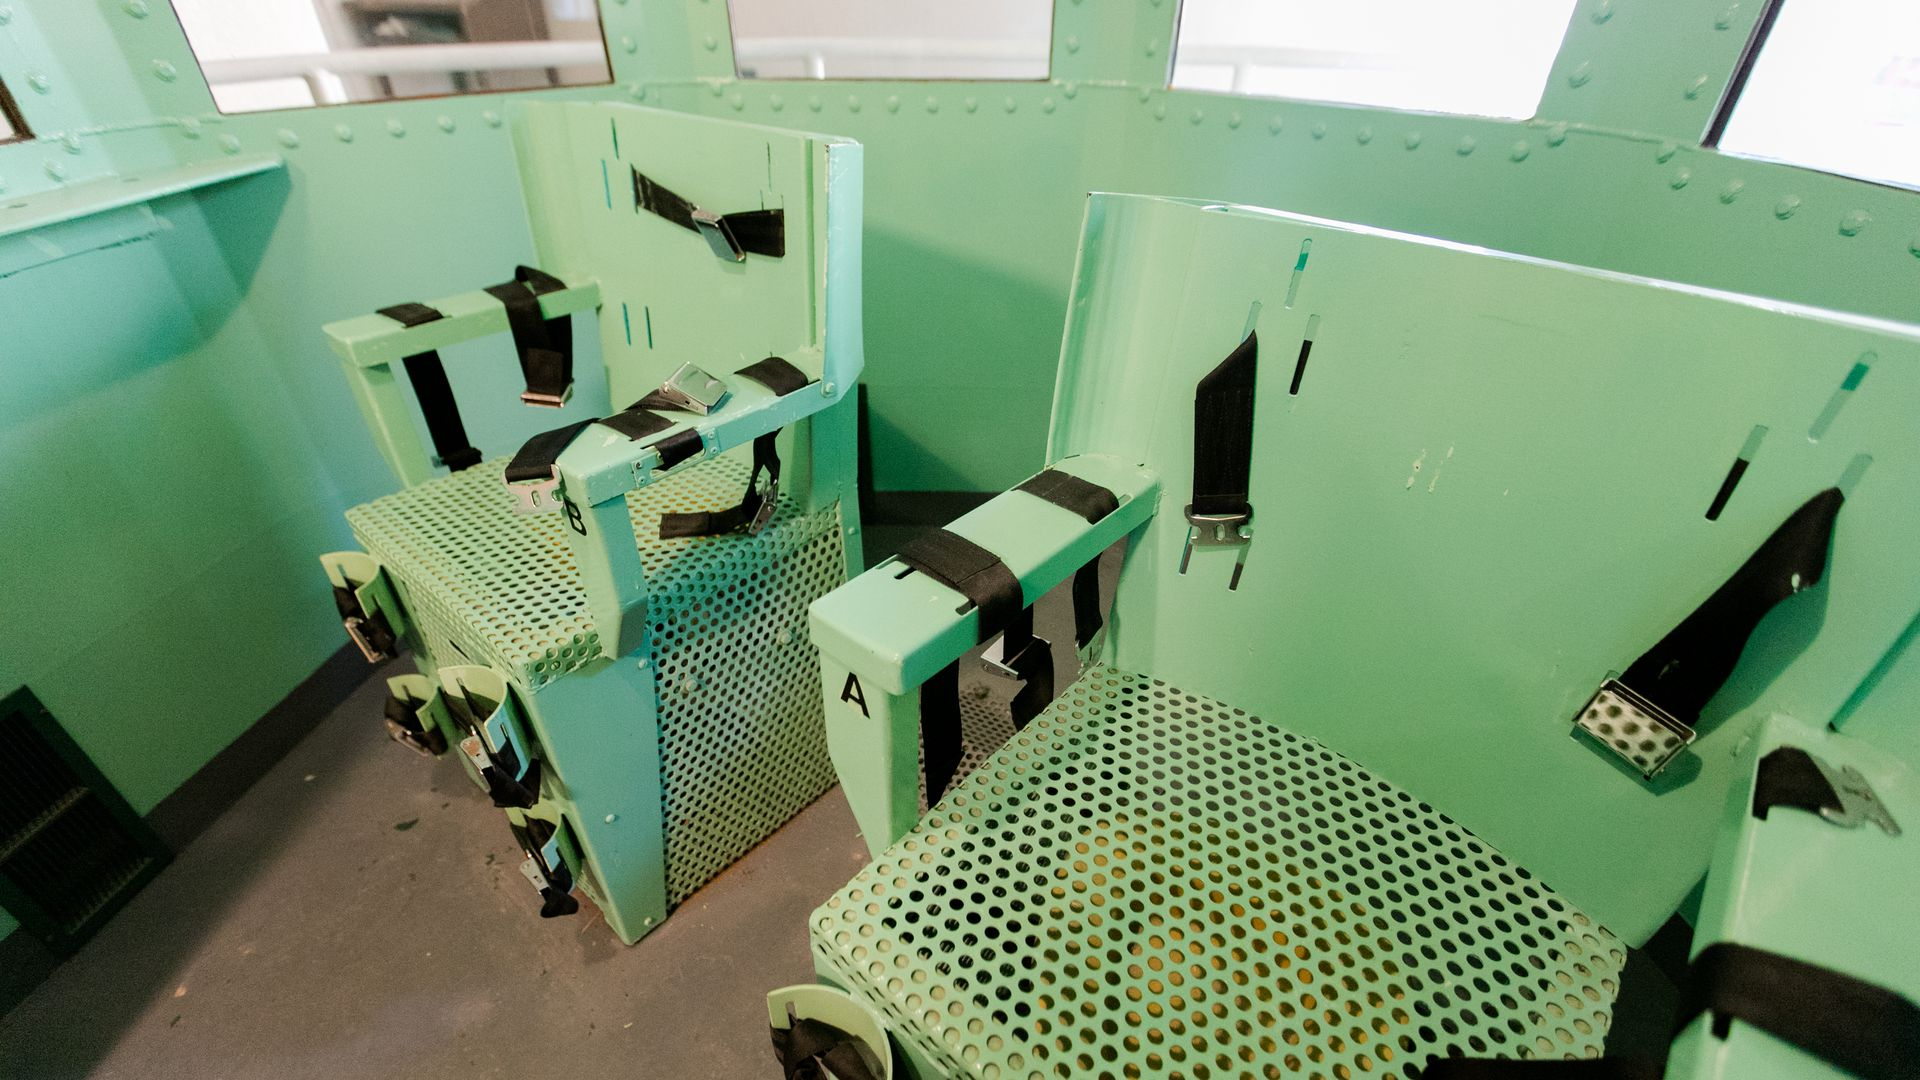 San Quentin's death row gas chamber is shown before being dismantled at San Quentin State Prison on March 13, 2019 in San Quentin, California.